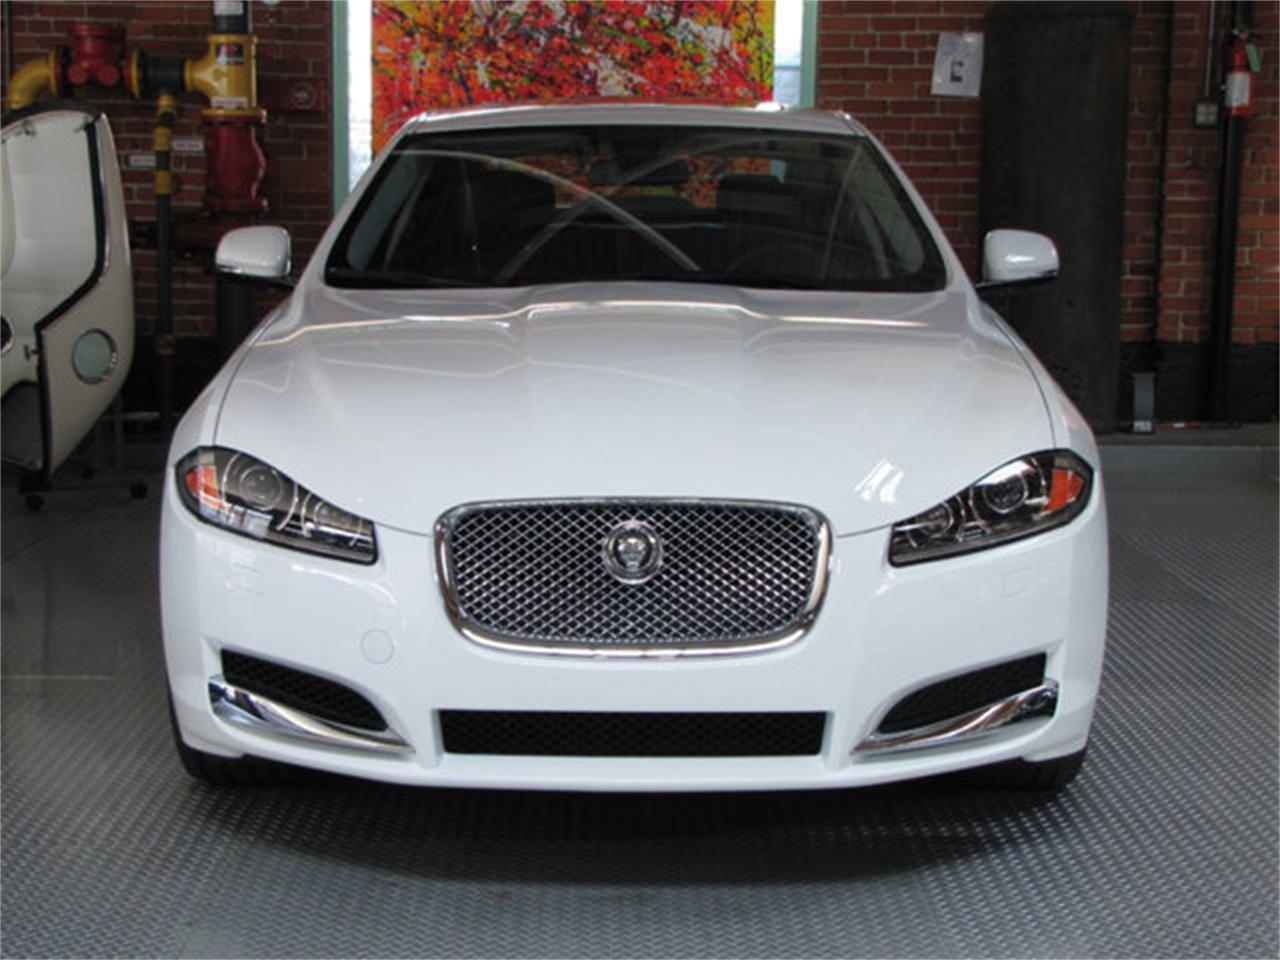 Large Picture of '13 Jaguar XF located in California Offered by JEM Motor Corp. - LEJJ